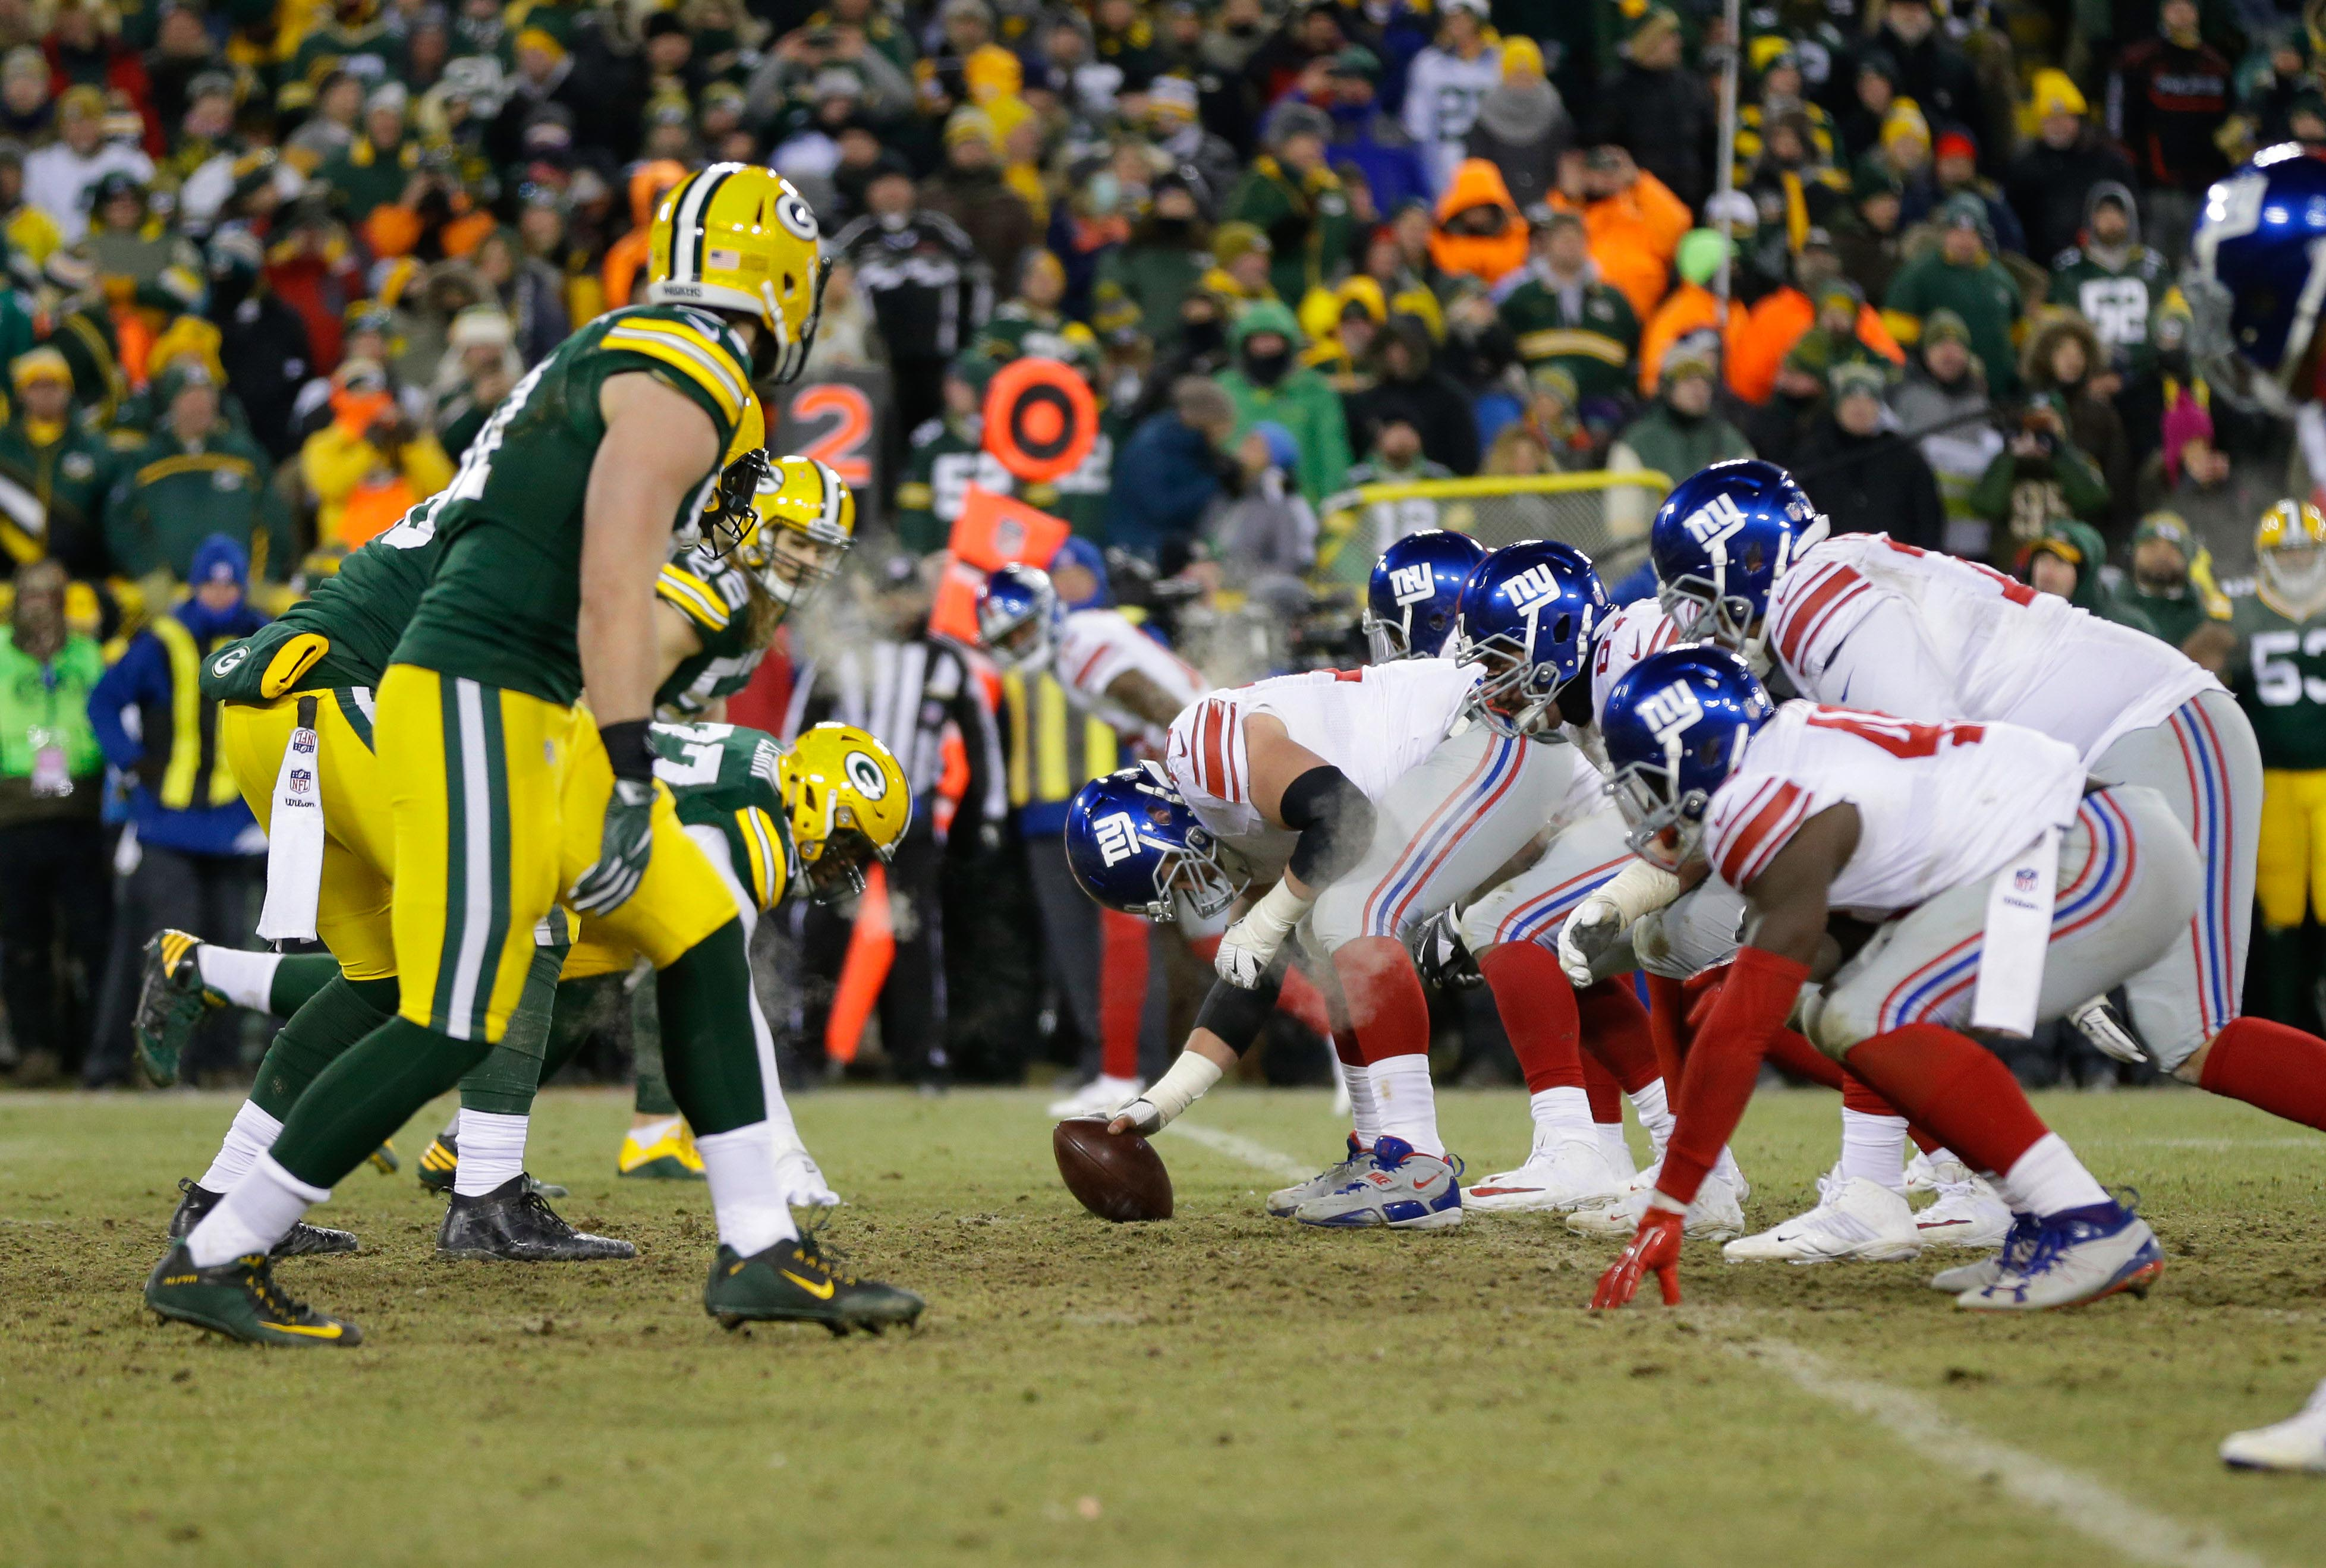 9823837-nfl-nfc-wild-card-new-york-giants-at-green-bay-packers